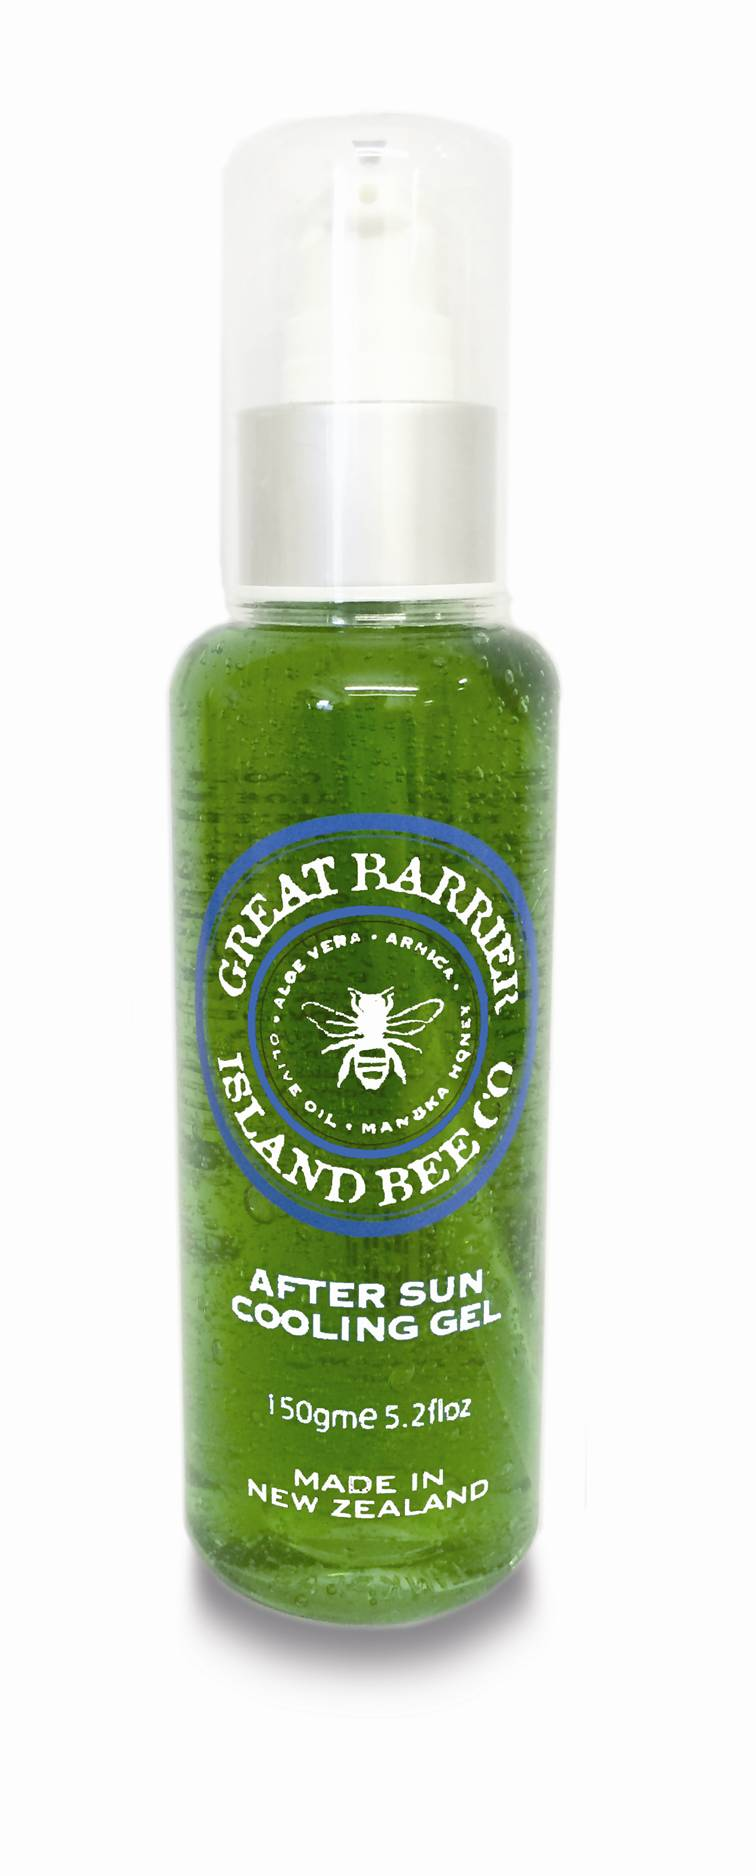 Great Barrier After Sun Cooling Gel with Aloe Vera 5.2 oz